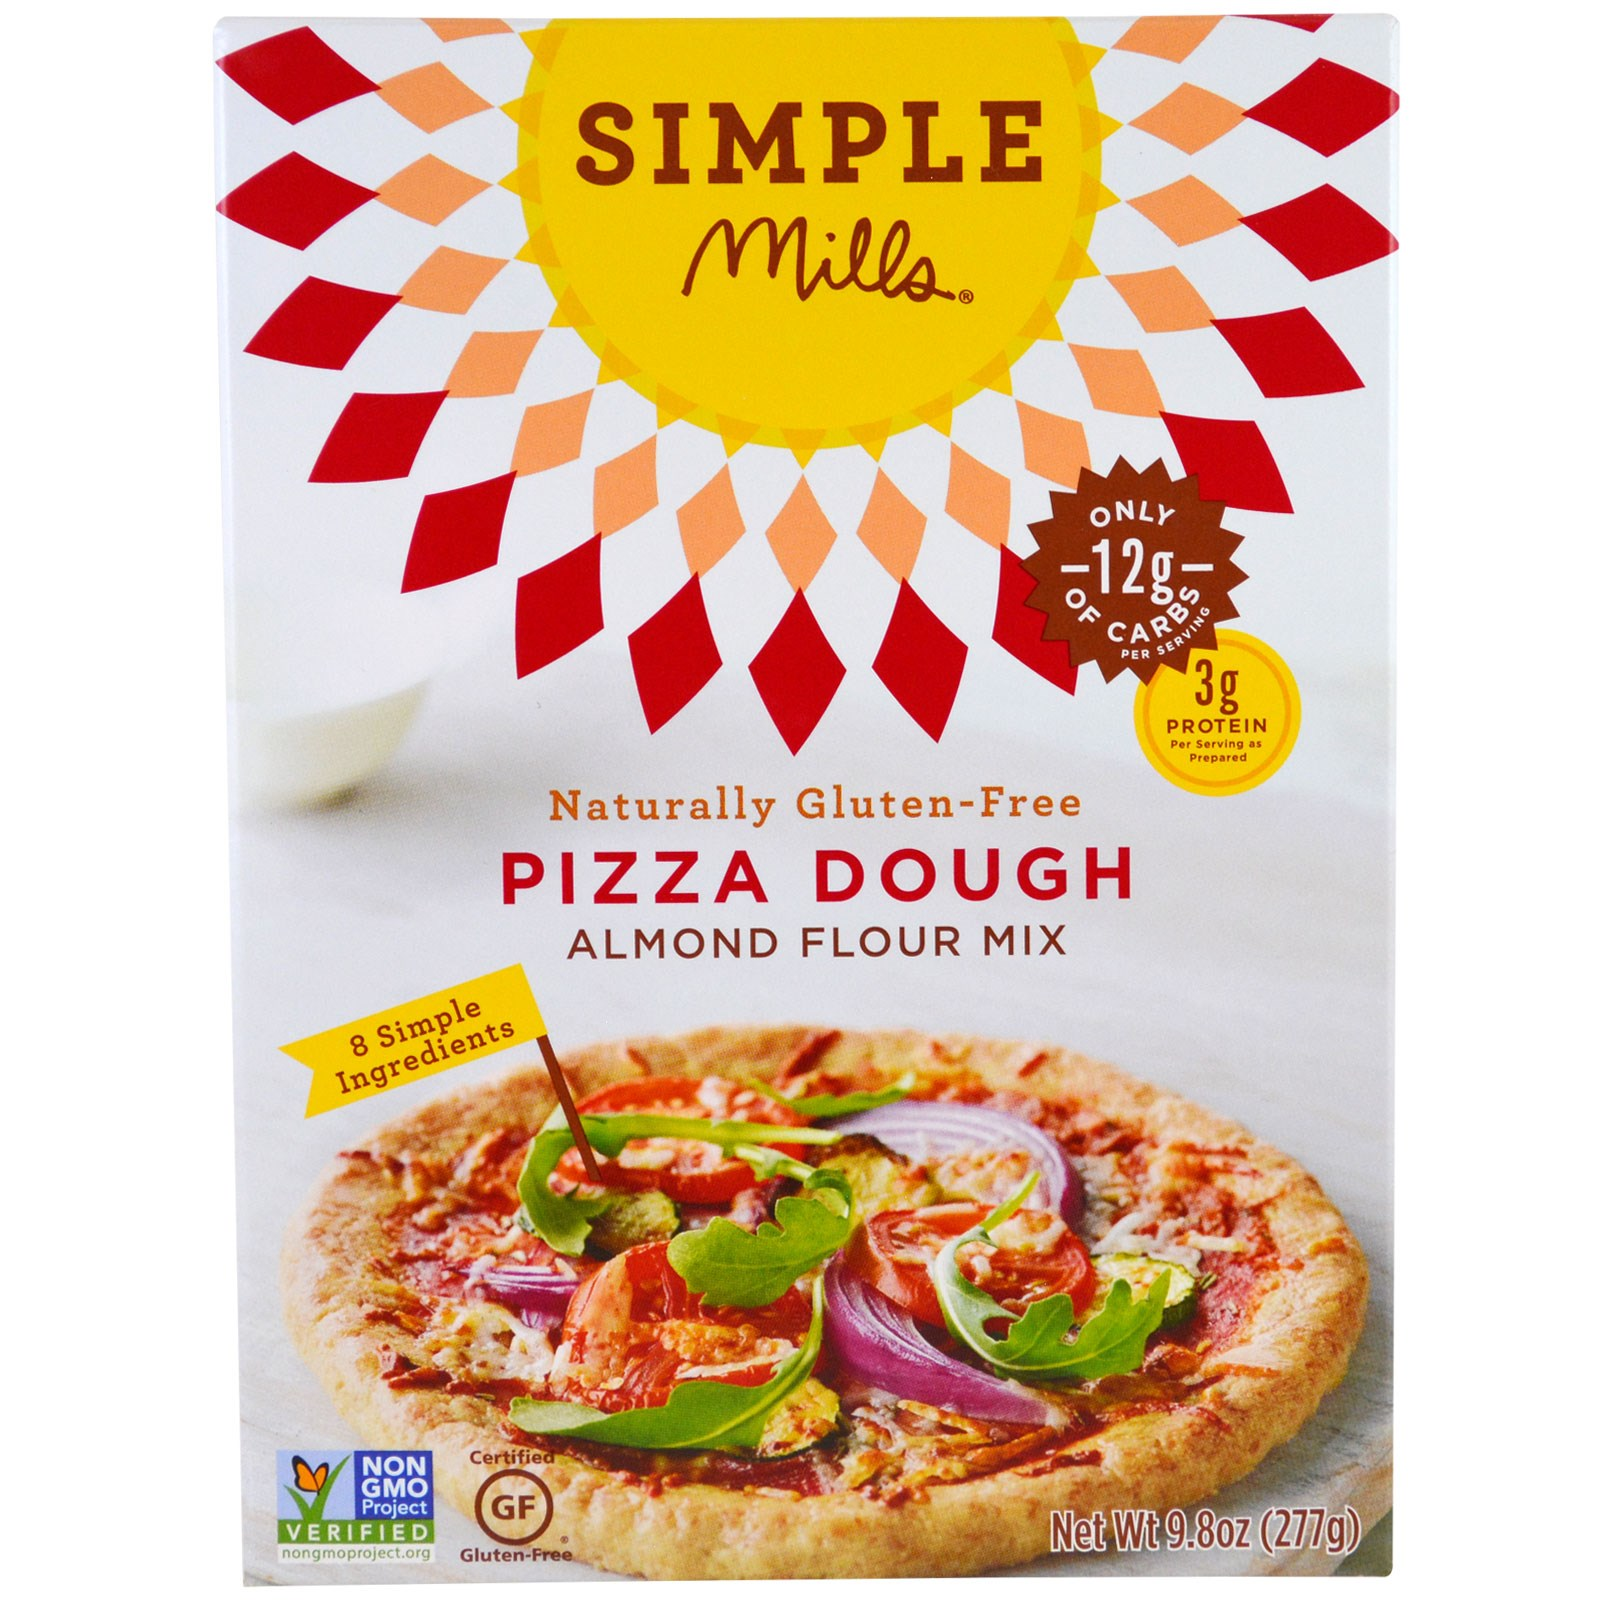 Simple Mills, Naturally Gluten-Free, Almond Flour Mix, Pizza Dough, 9.8 oz (pack of 4)